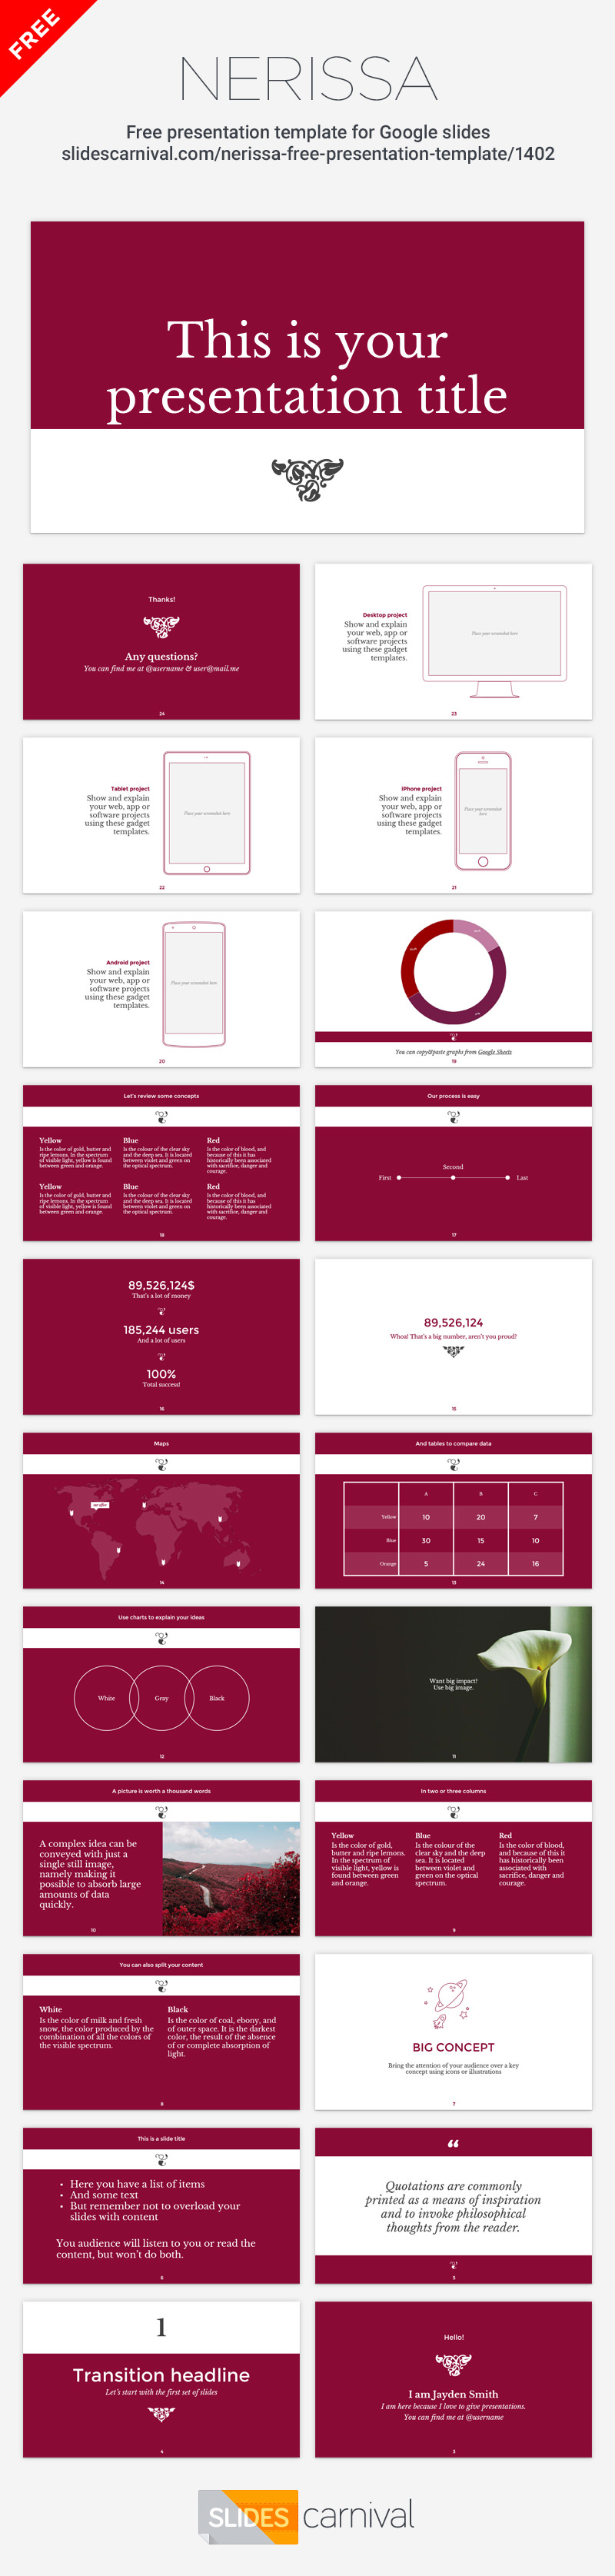 Nerissa Is A Classic And Elegant Free Presentation Template The Serif Typography The Sober Color Presentation Template Free Templates Presentation Templates